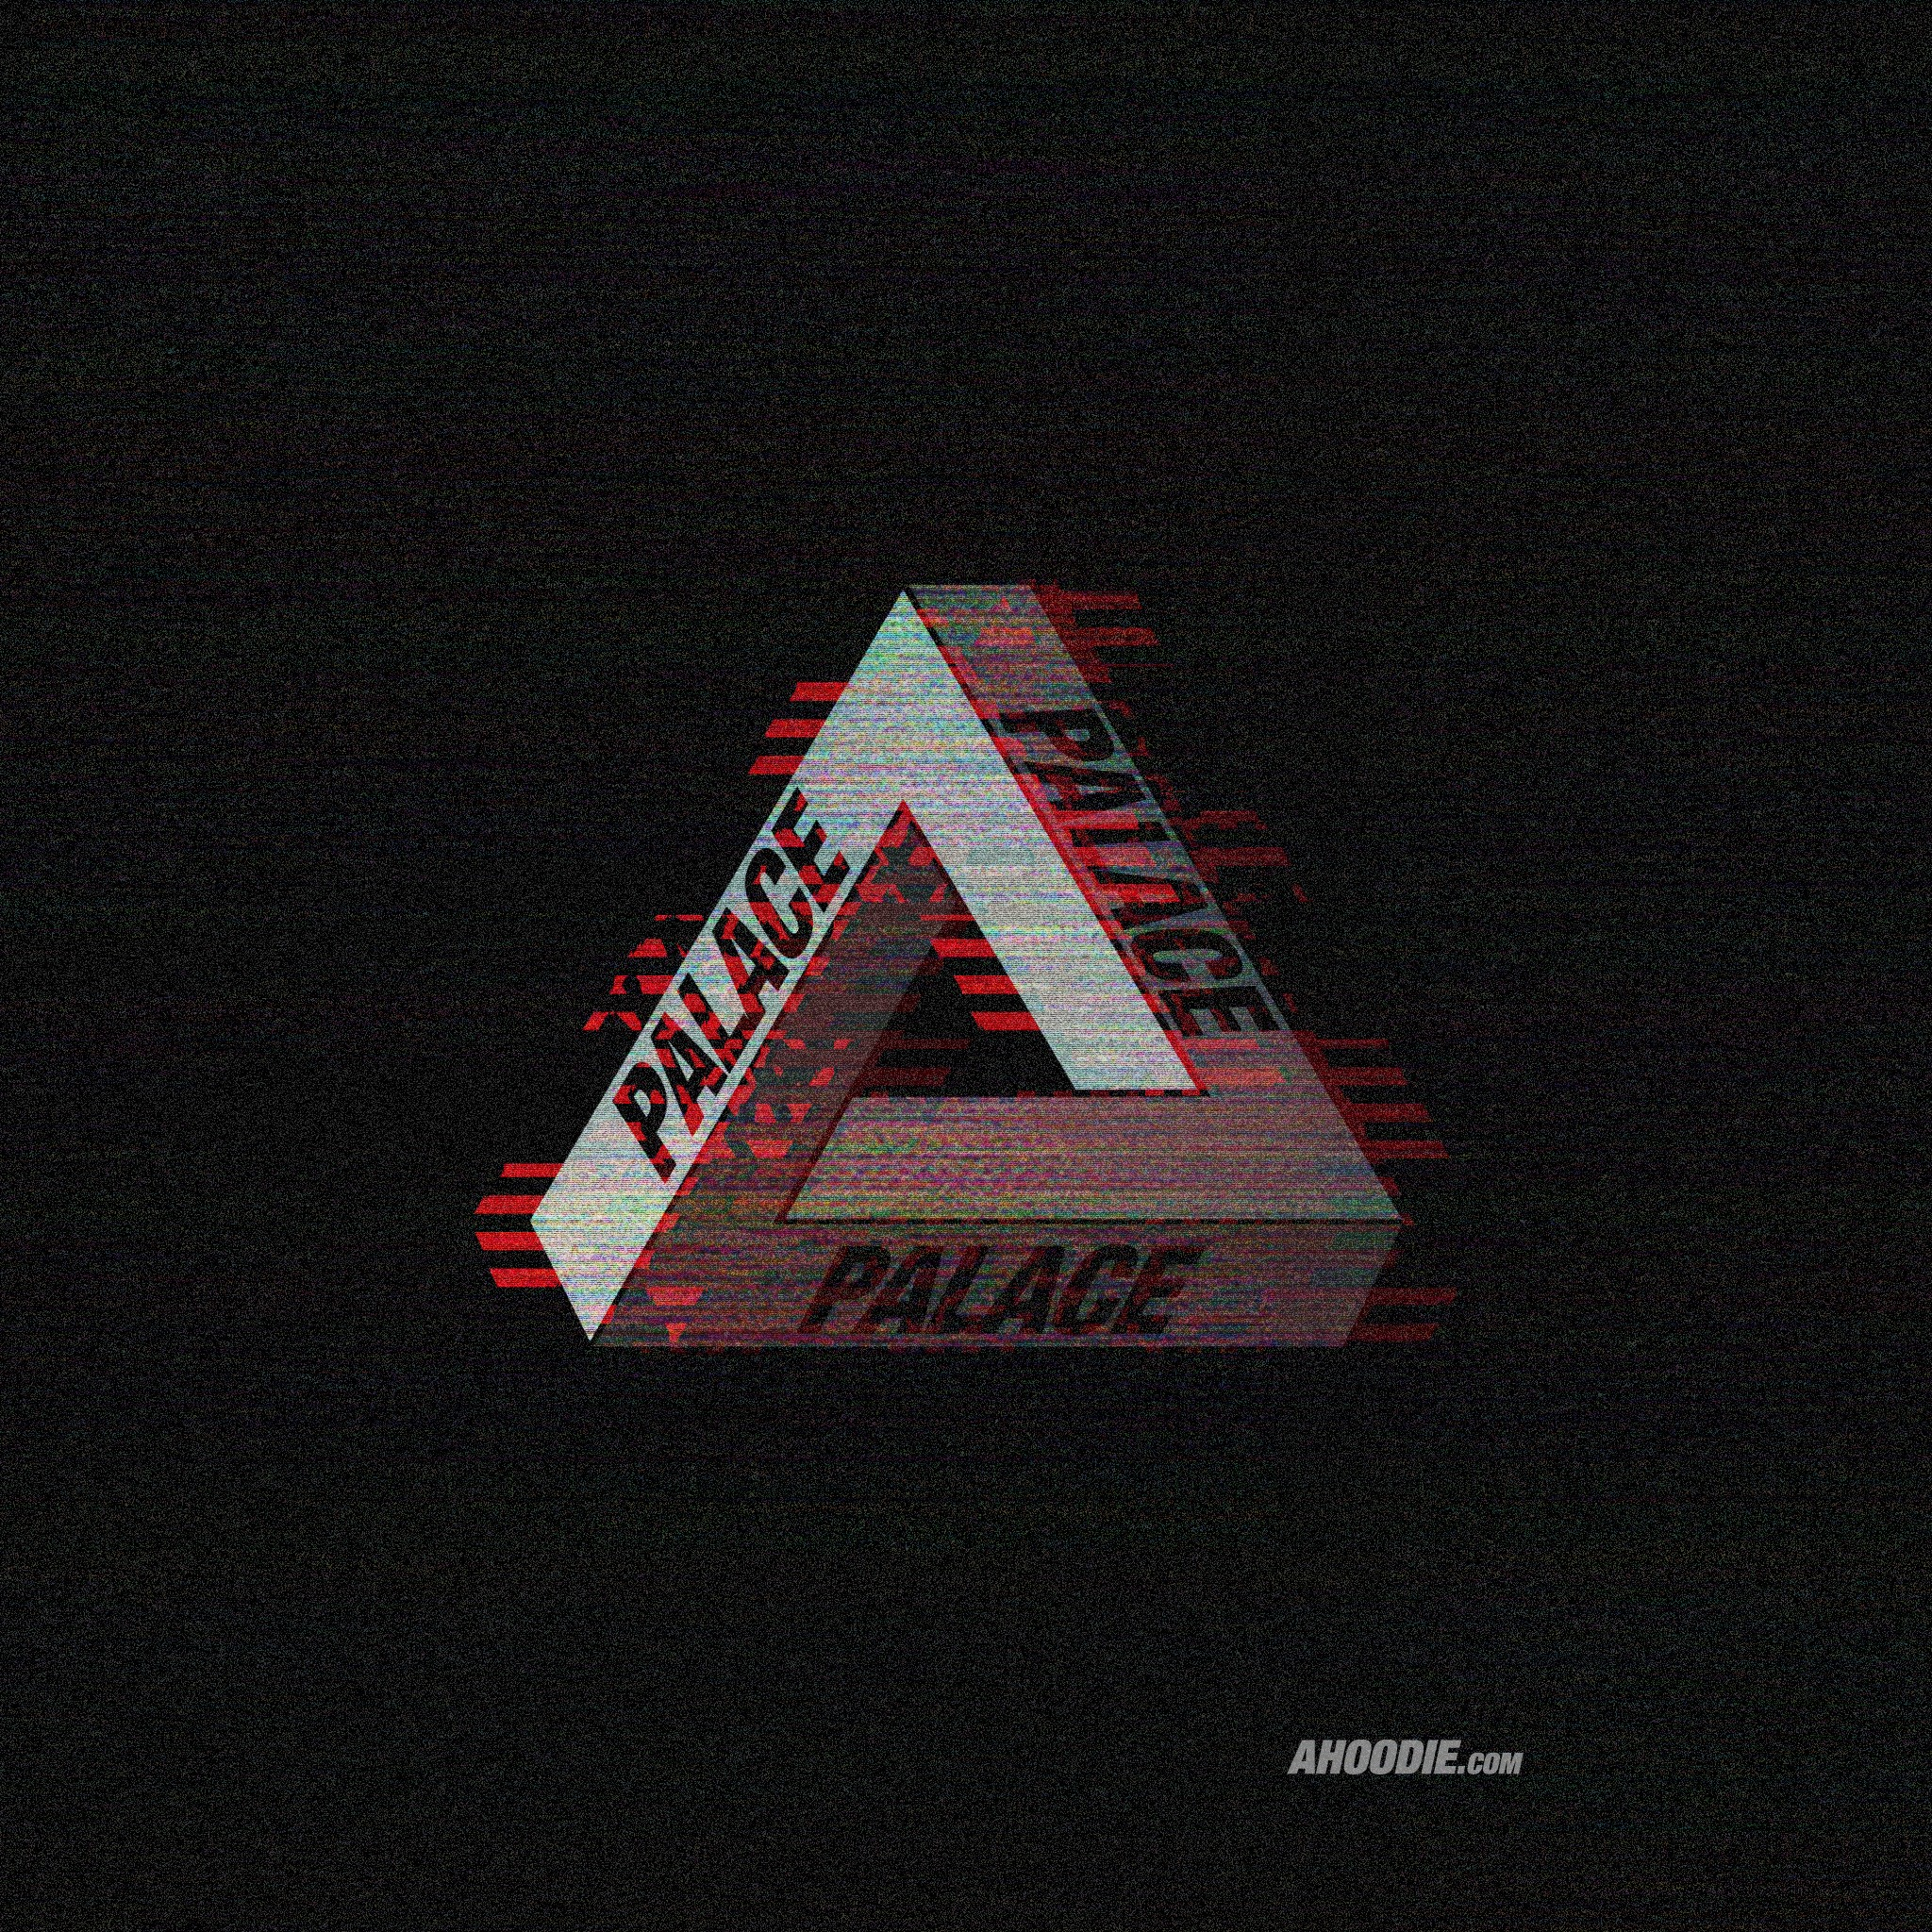 Wallpapers Palace Skateboards VHS Glitch